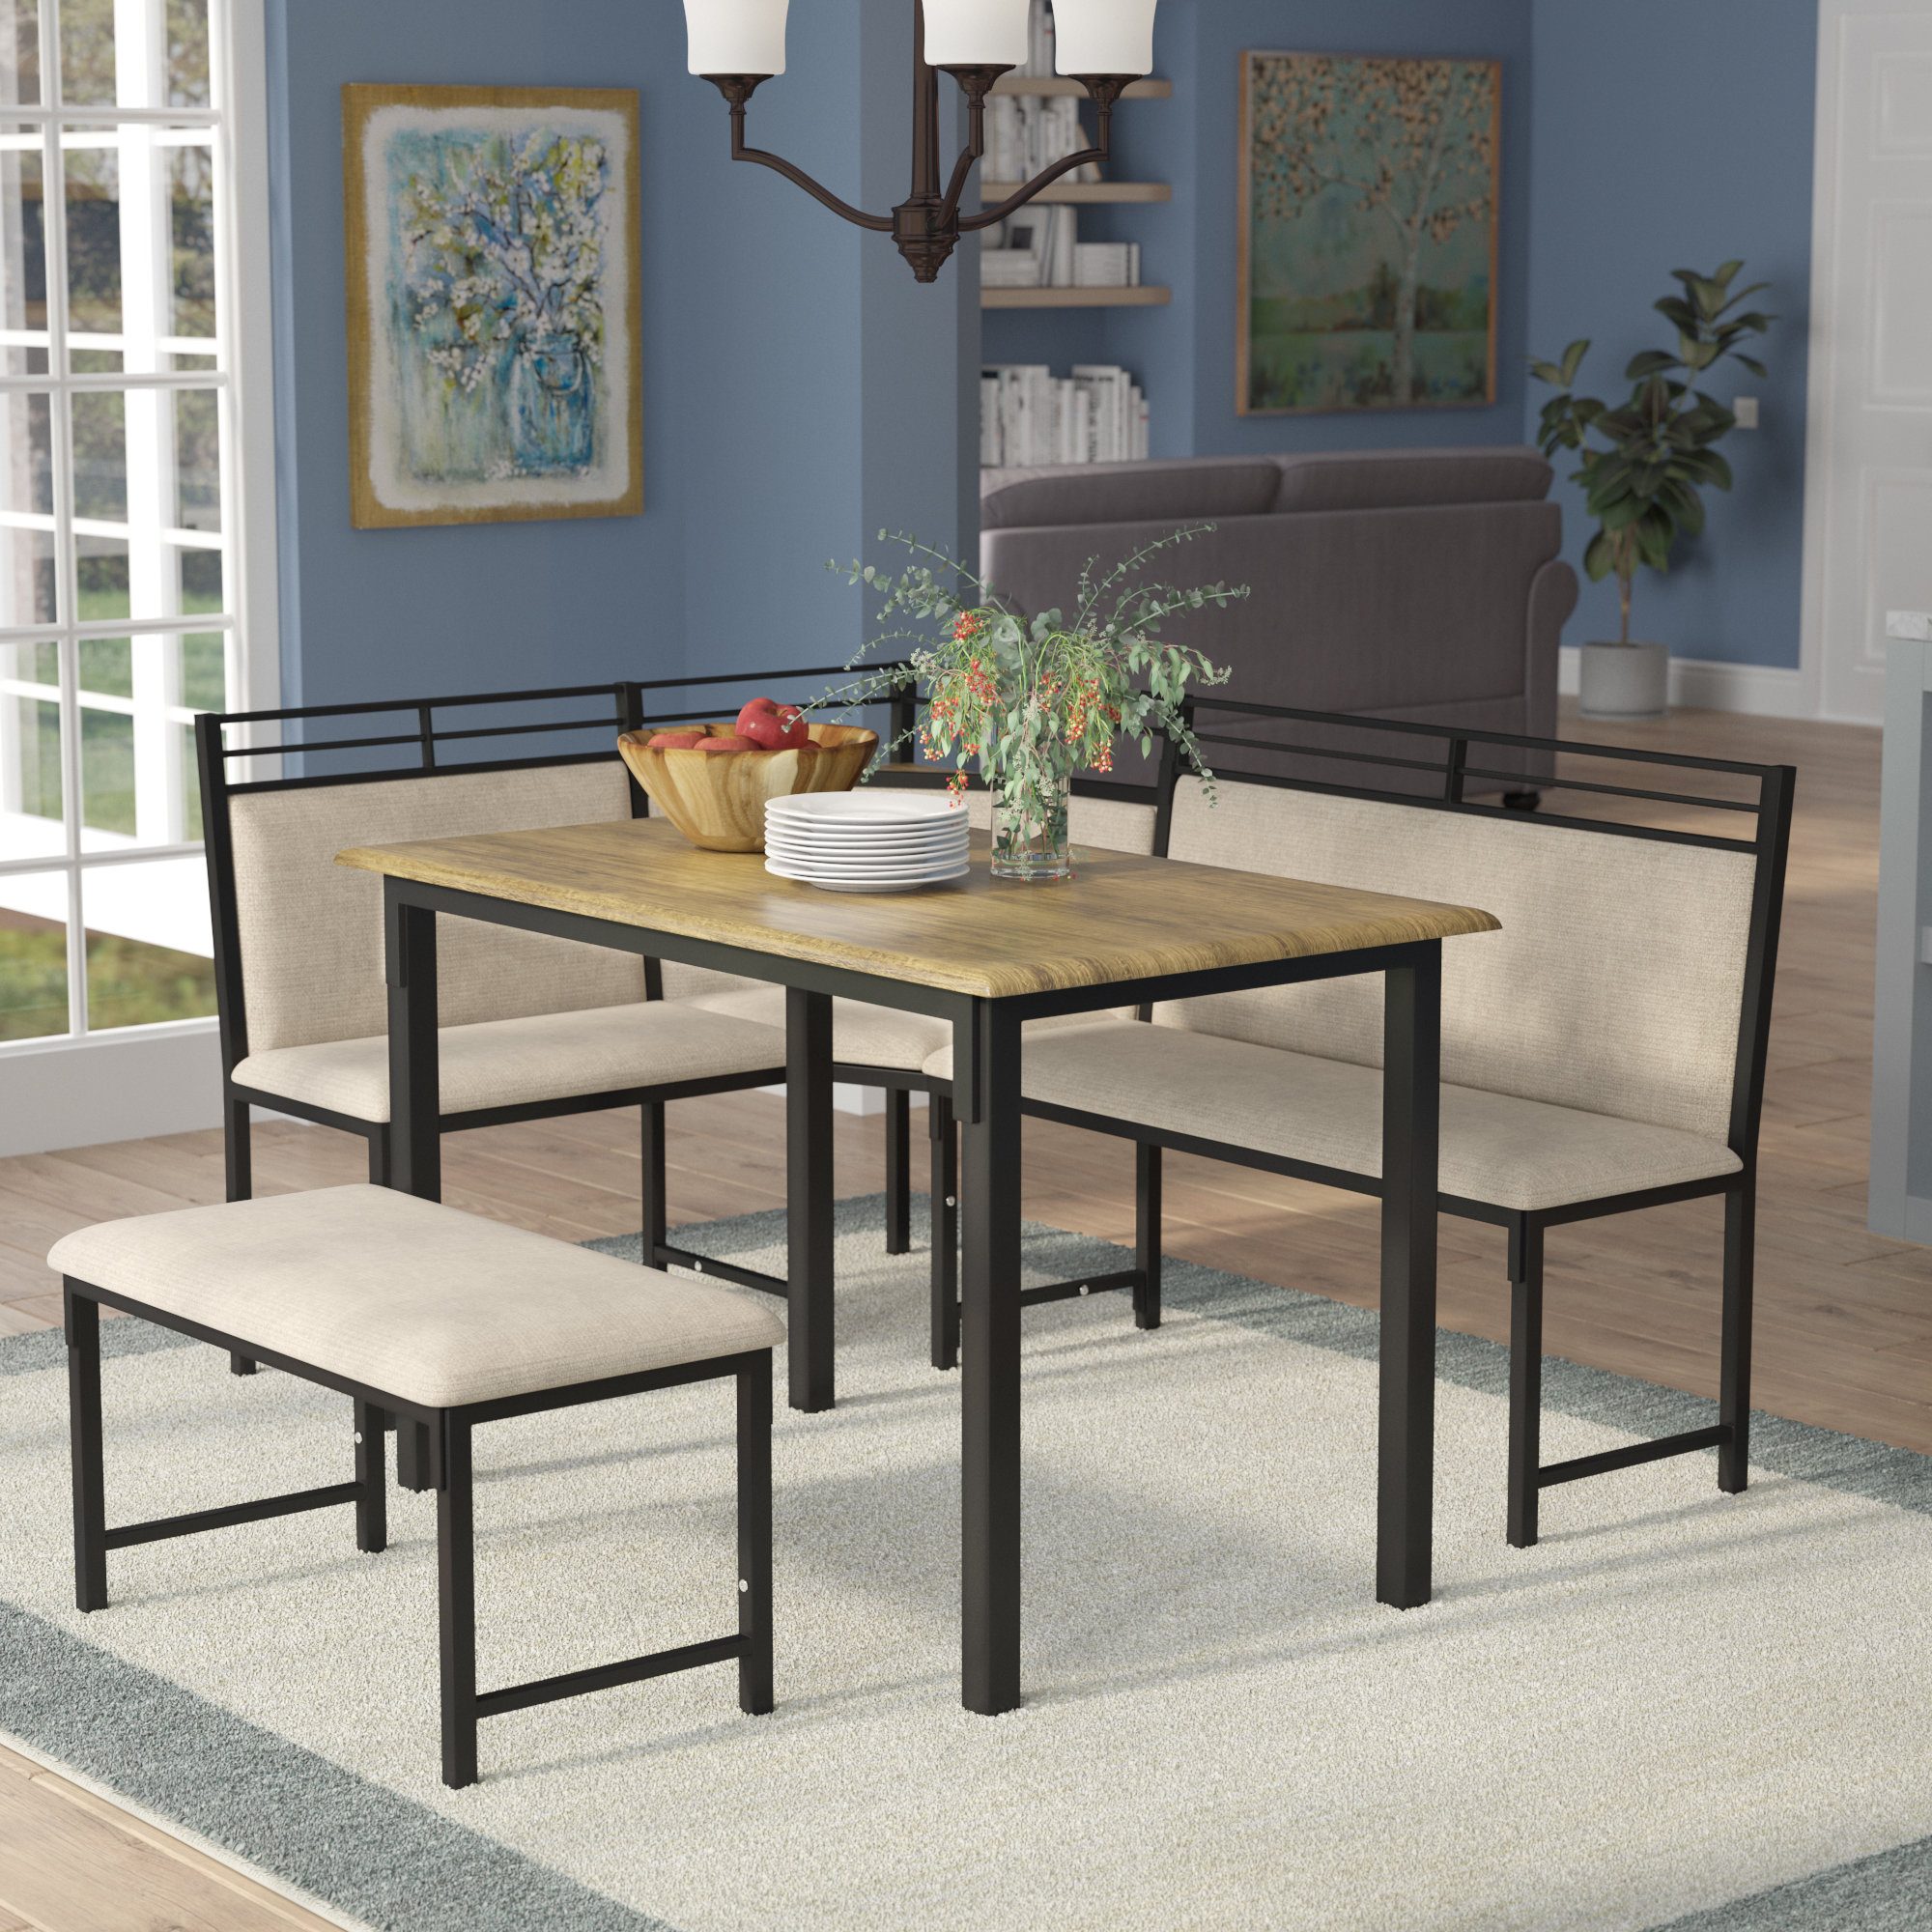 Moonachie Corner 3 Piece Dining Set Throughout Preferred Isolde 3 Piece Dining Sets (View 12 of 20)